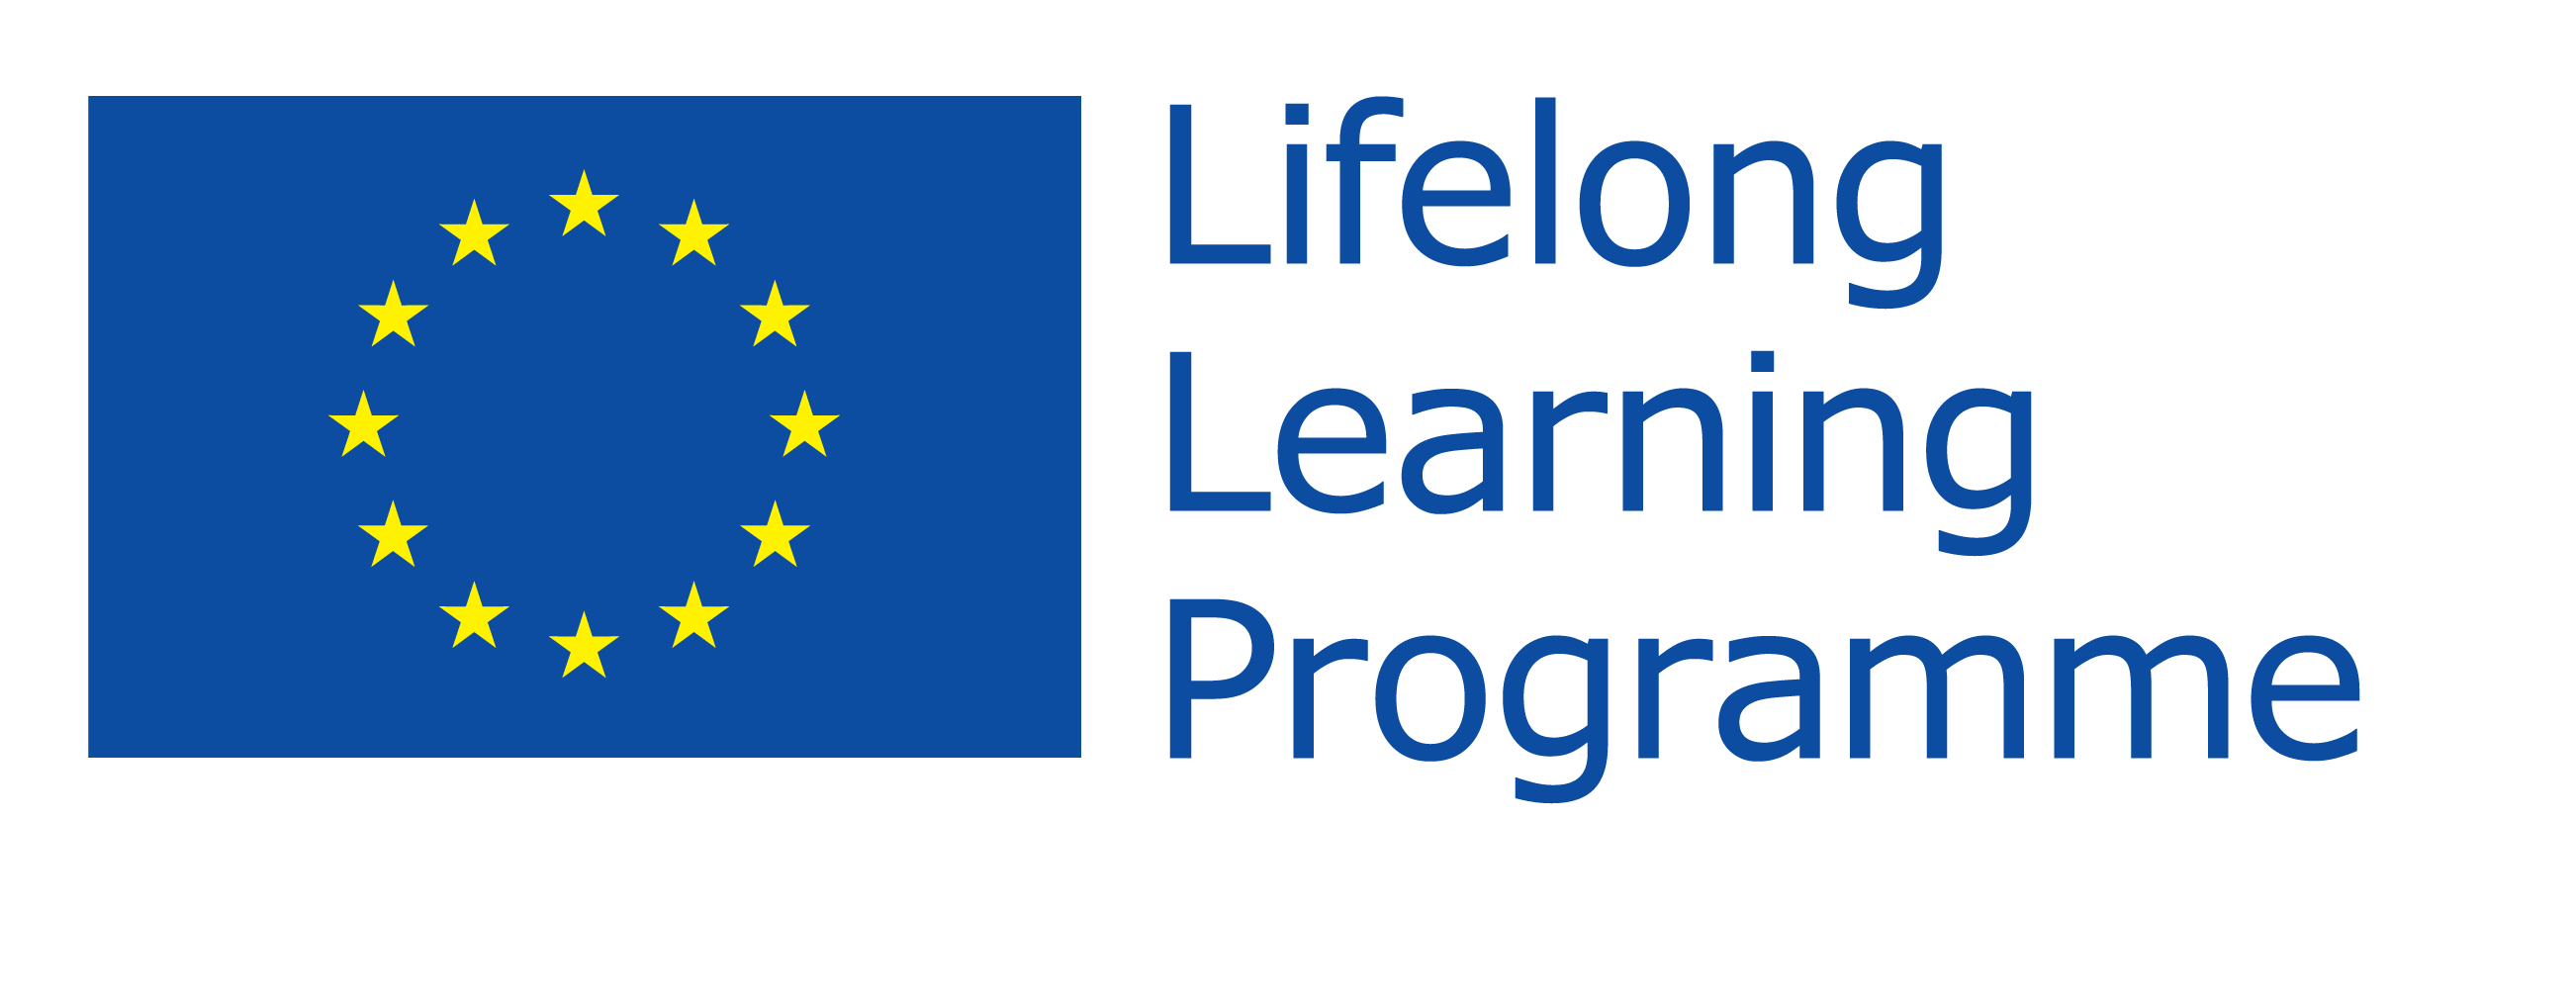 EU Lifelong Learning Program